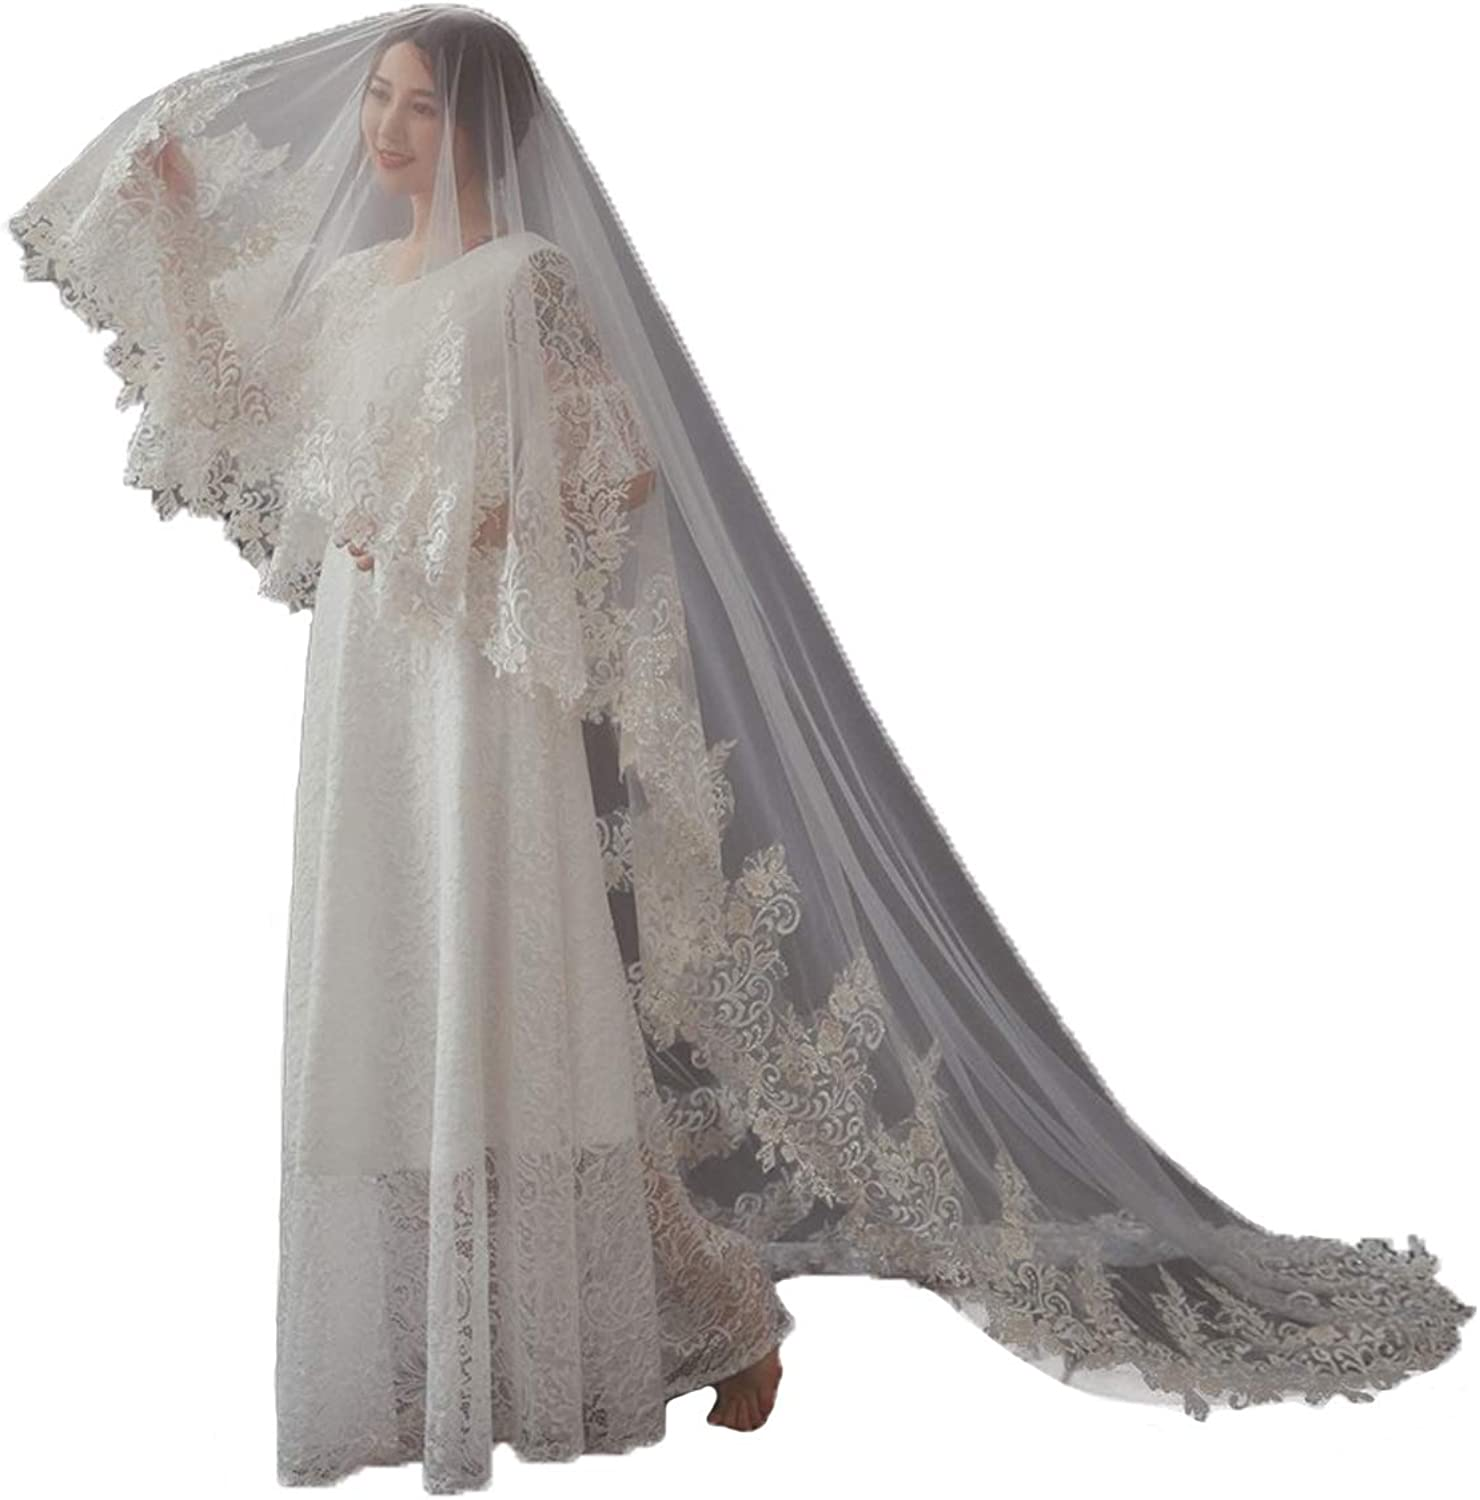 Newdeve Wedding Veils Beaded Lace Cathedral 2 Tier Blusher with Comb